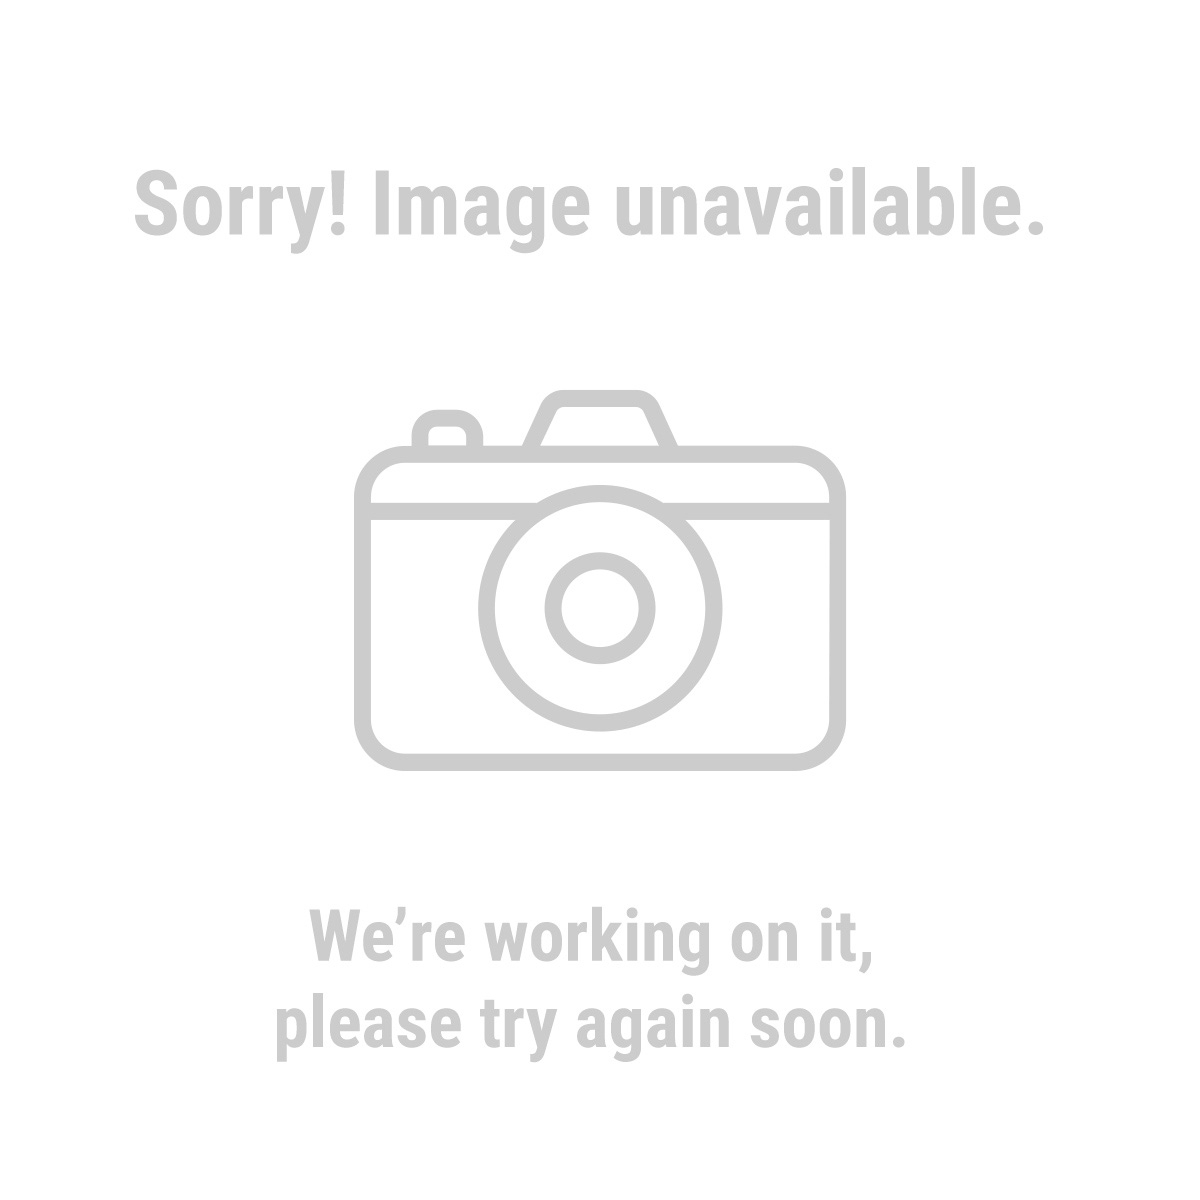 Storehouse 92567 4 Bin Storage Container